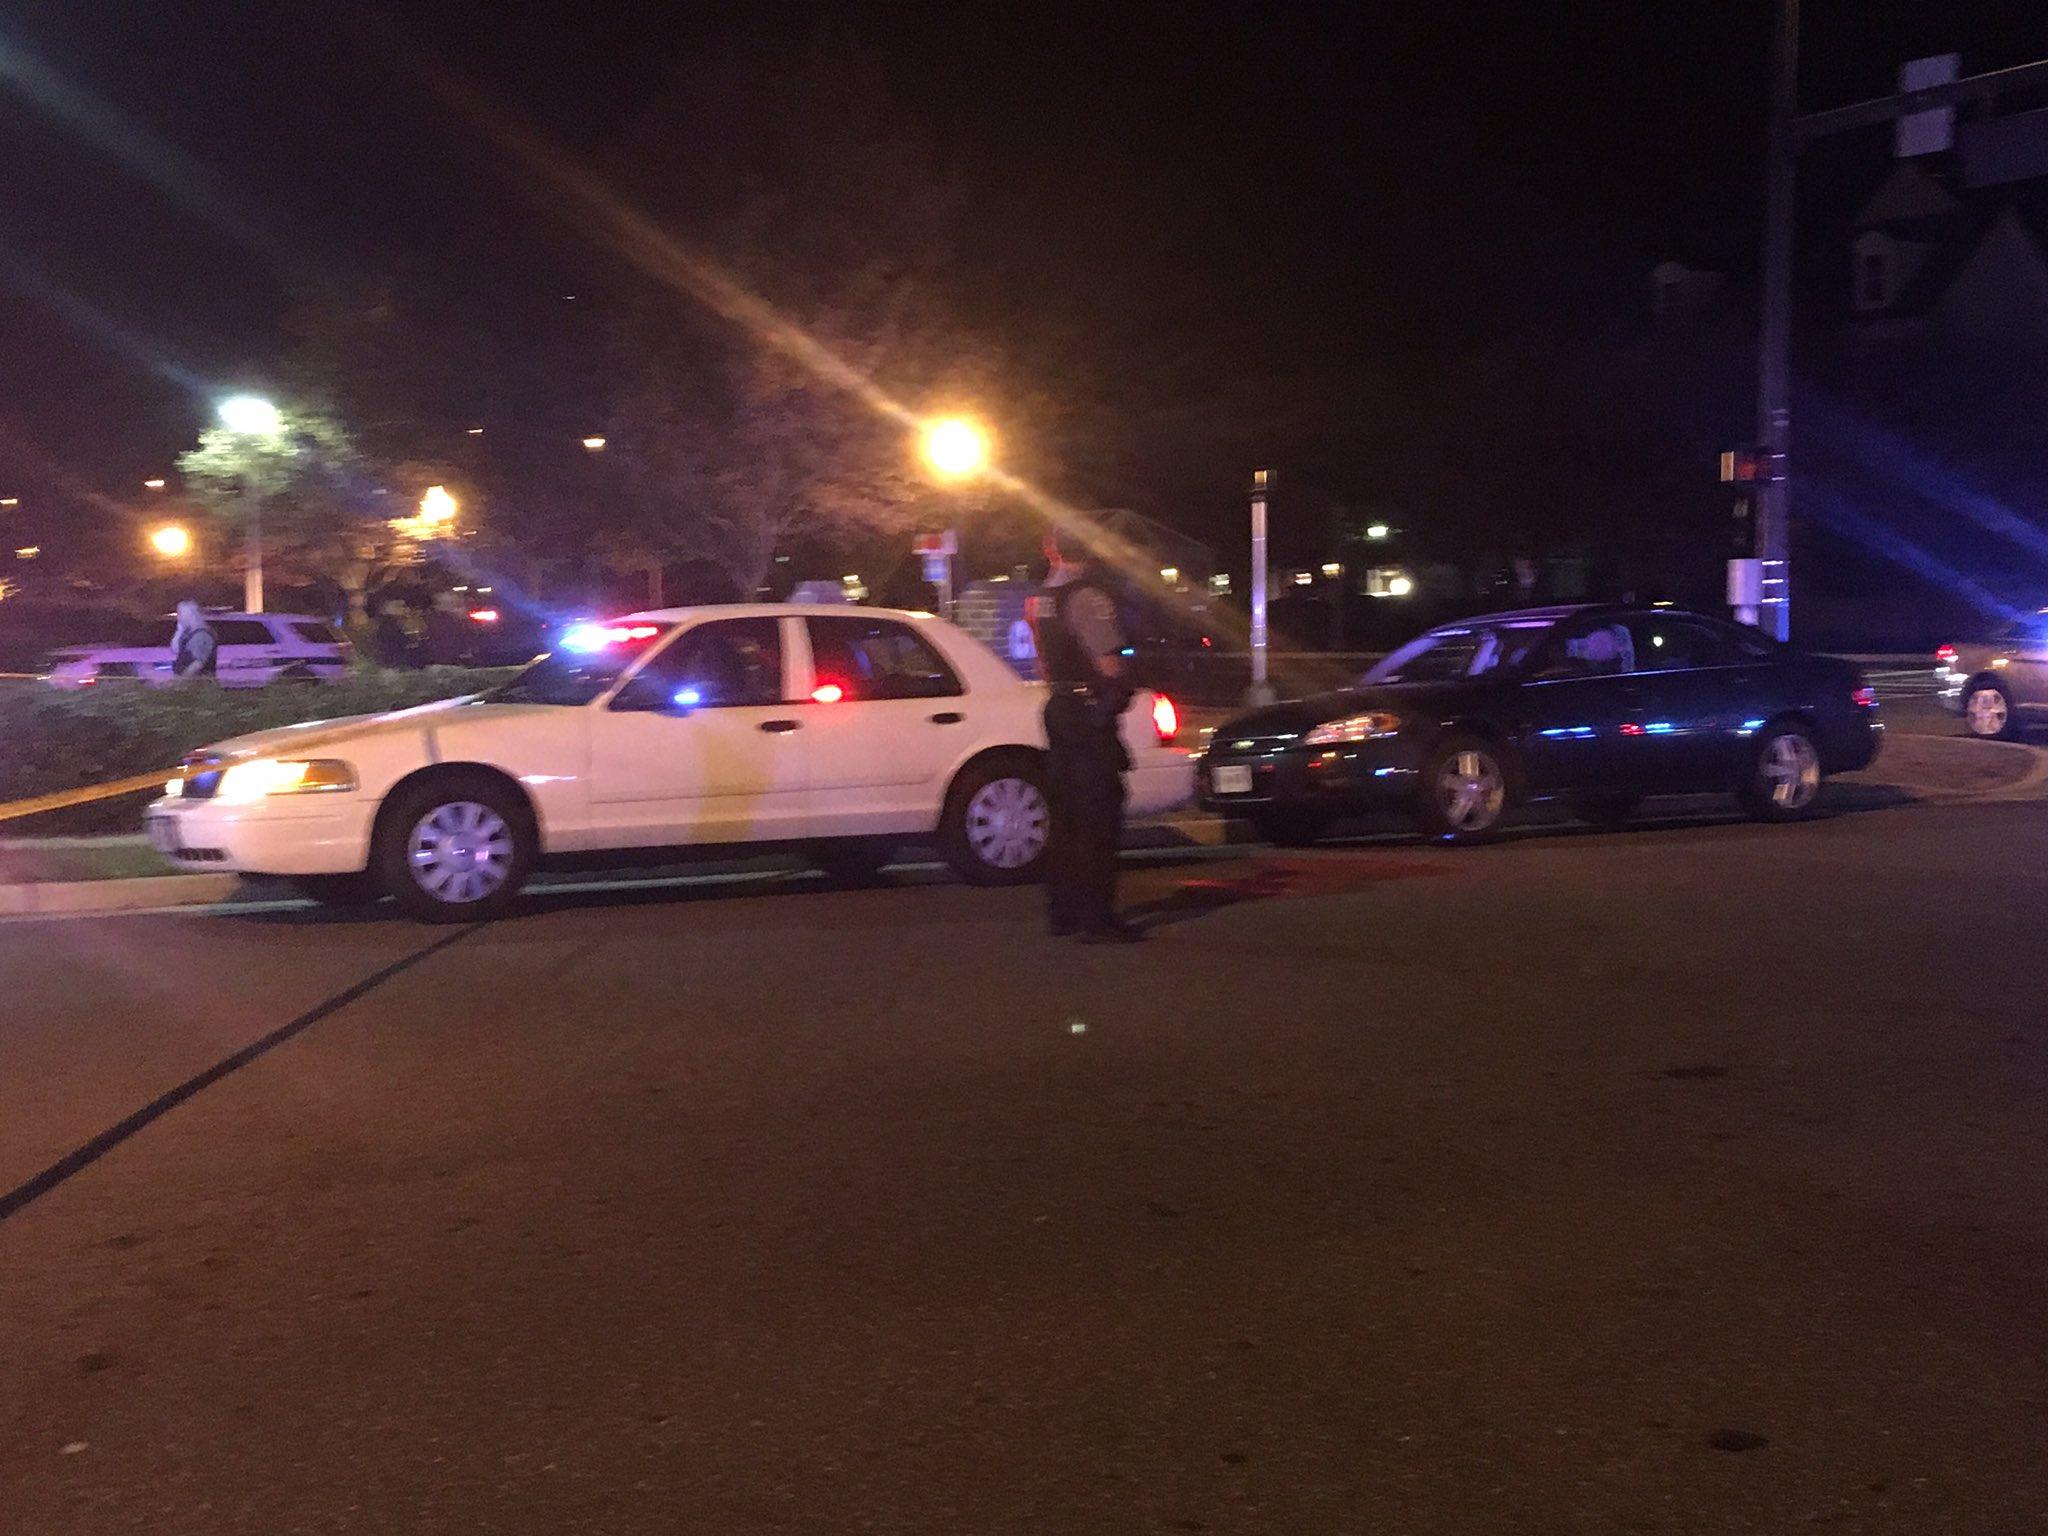 Police are on the scene of a shooting that left two dead and another person seriously injured in Alexandria, Va.  Sunday, Oct. 22, 2017 (Q McCray, ABC7){&amp;nbsp;}<p></p>